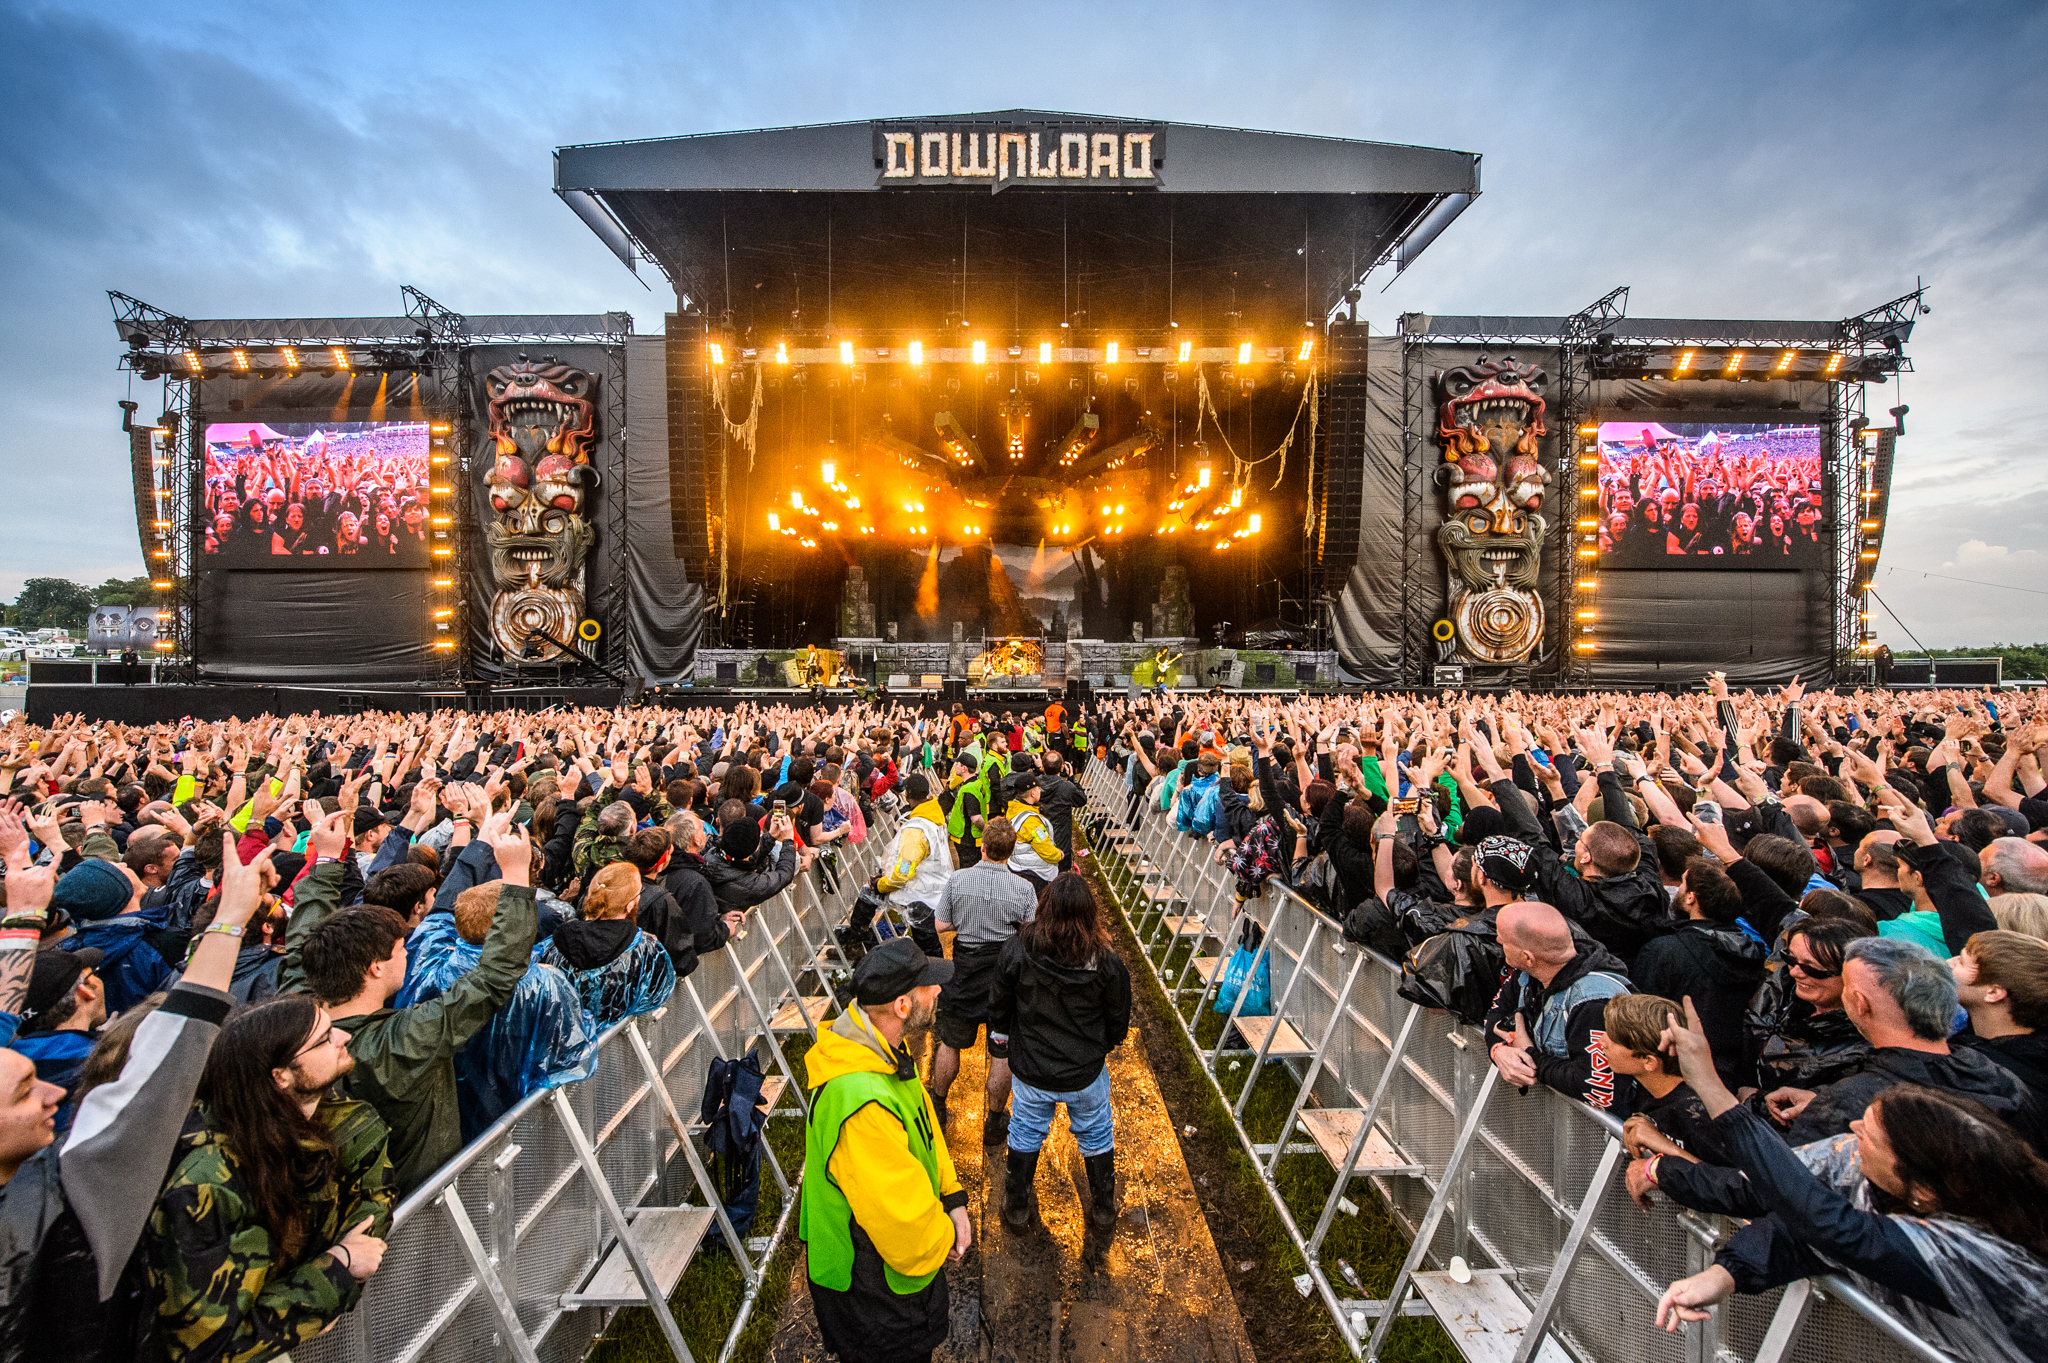 Guns N' Roses will be prowling this very stage in a little over two months.